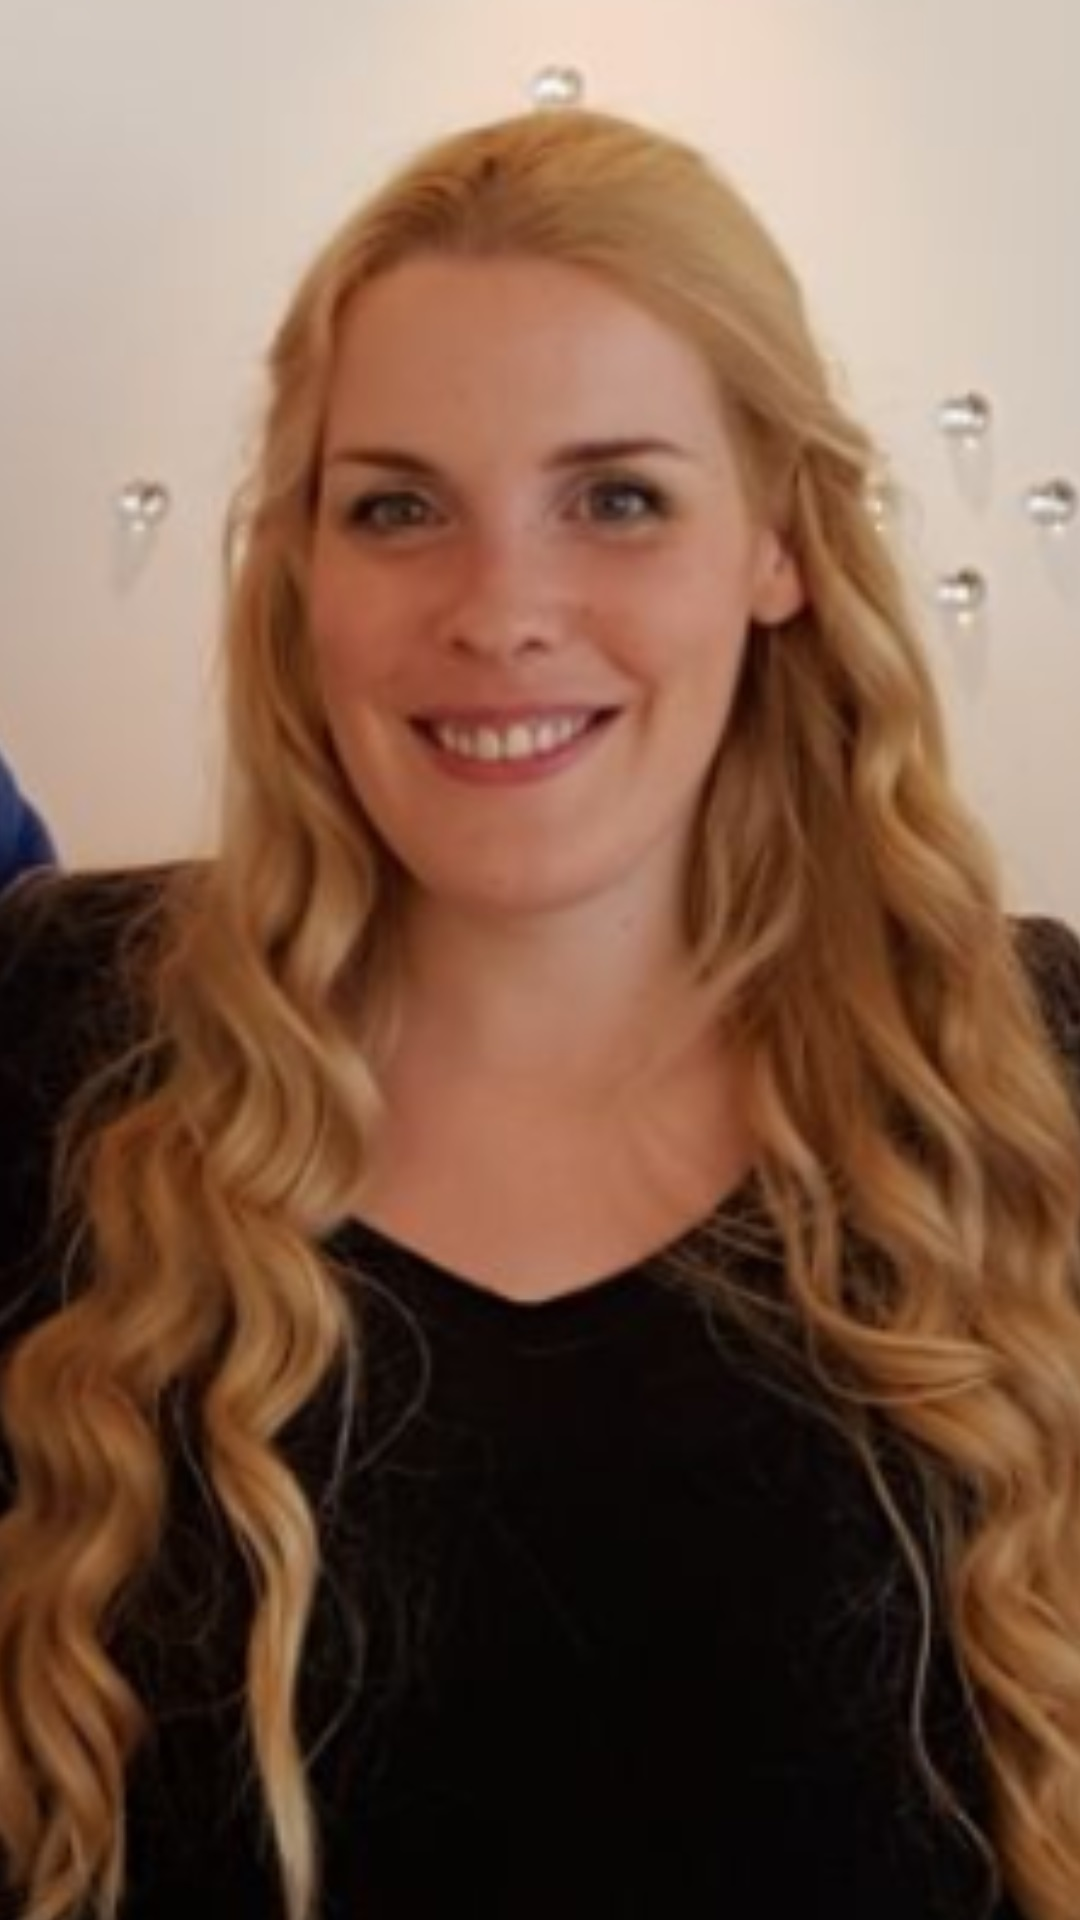 Dominique Koevoets, M.A., BLaw